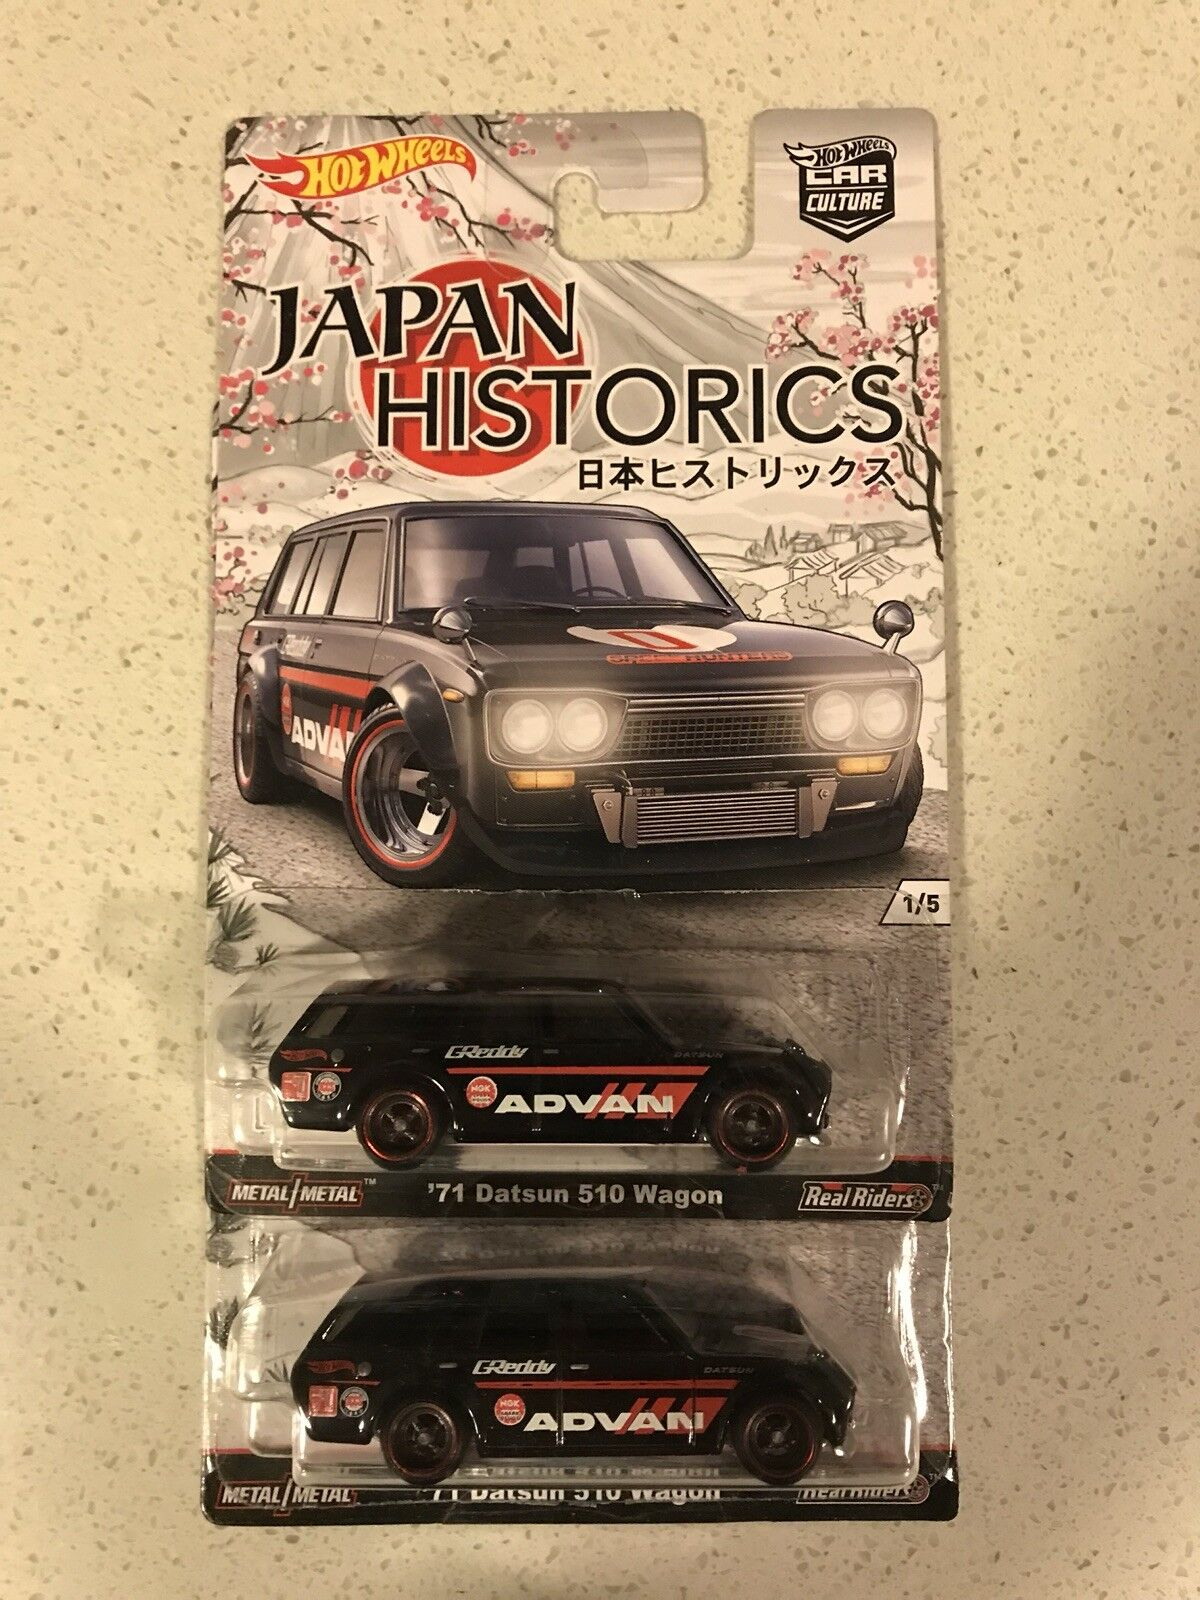 Hot wheels menge 2 japan historics datsun 510 wagen glatt & mesh 1971 grill